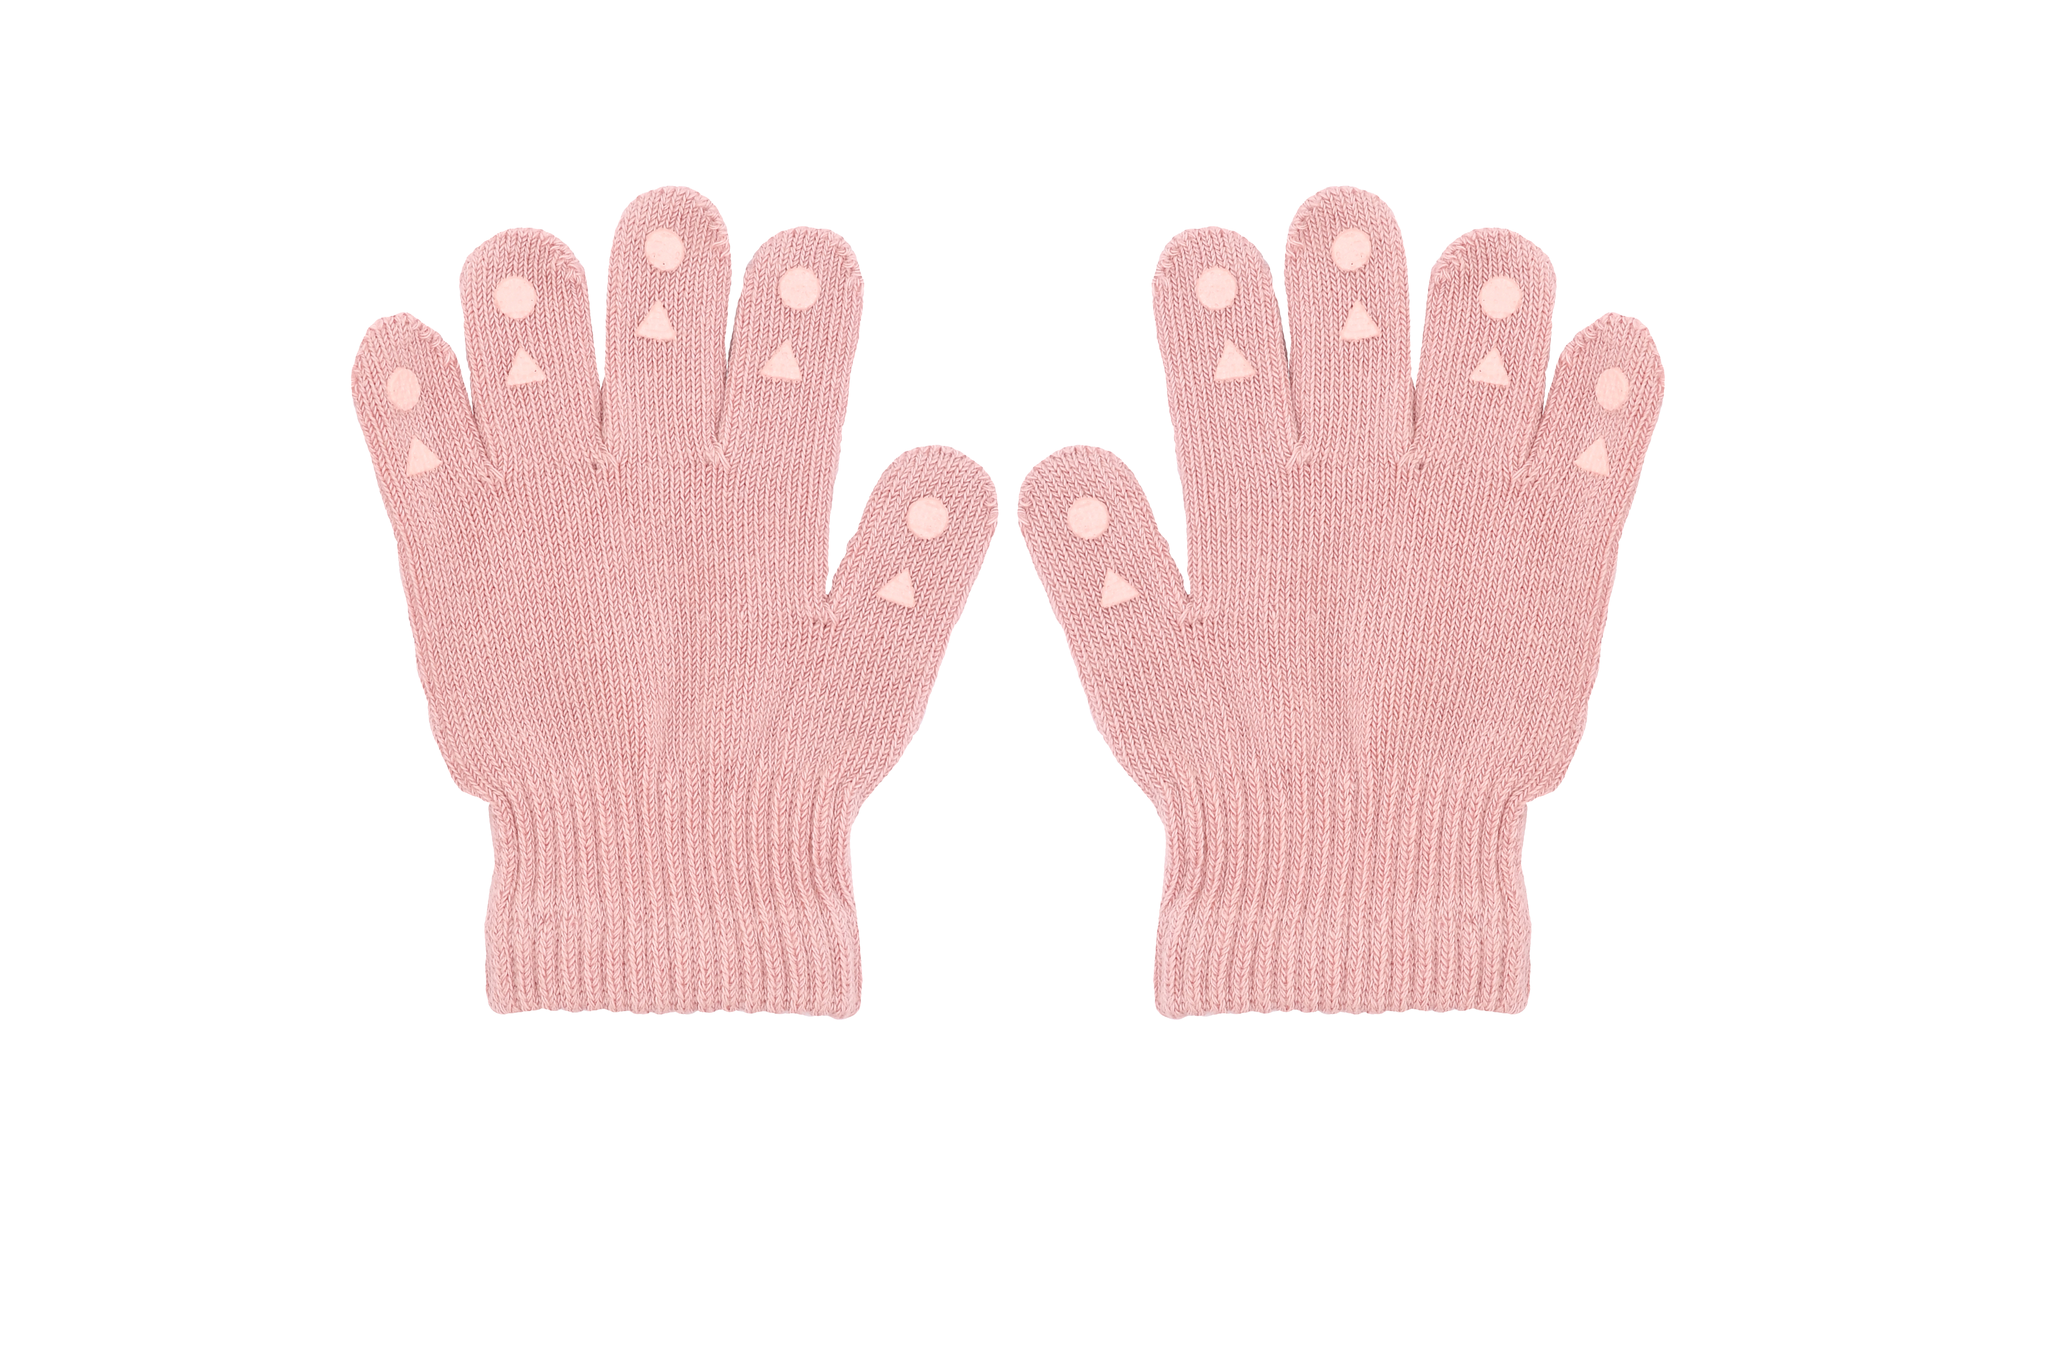 GoBabyGo Grip Gloves Fingervantar 2-3 år - Dusty Rose